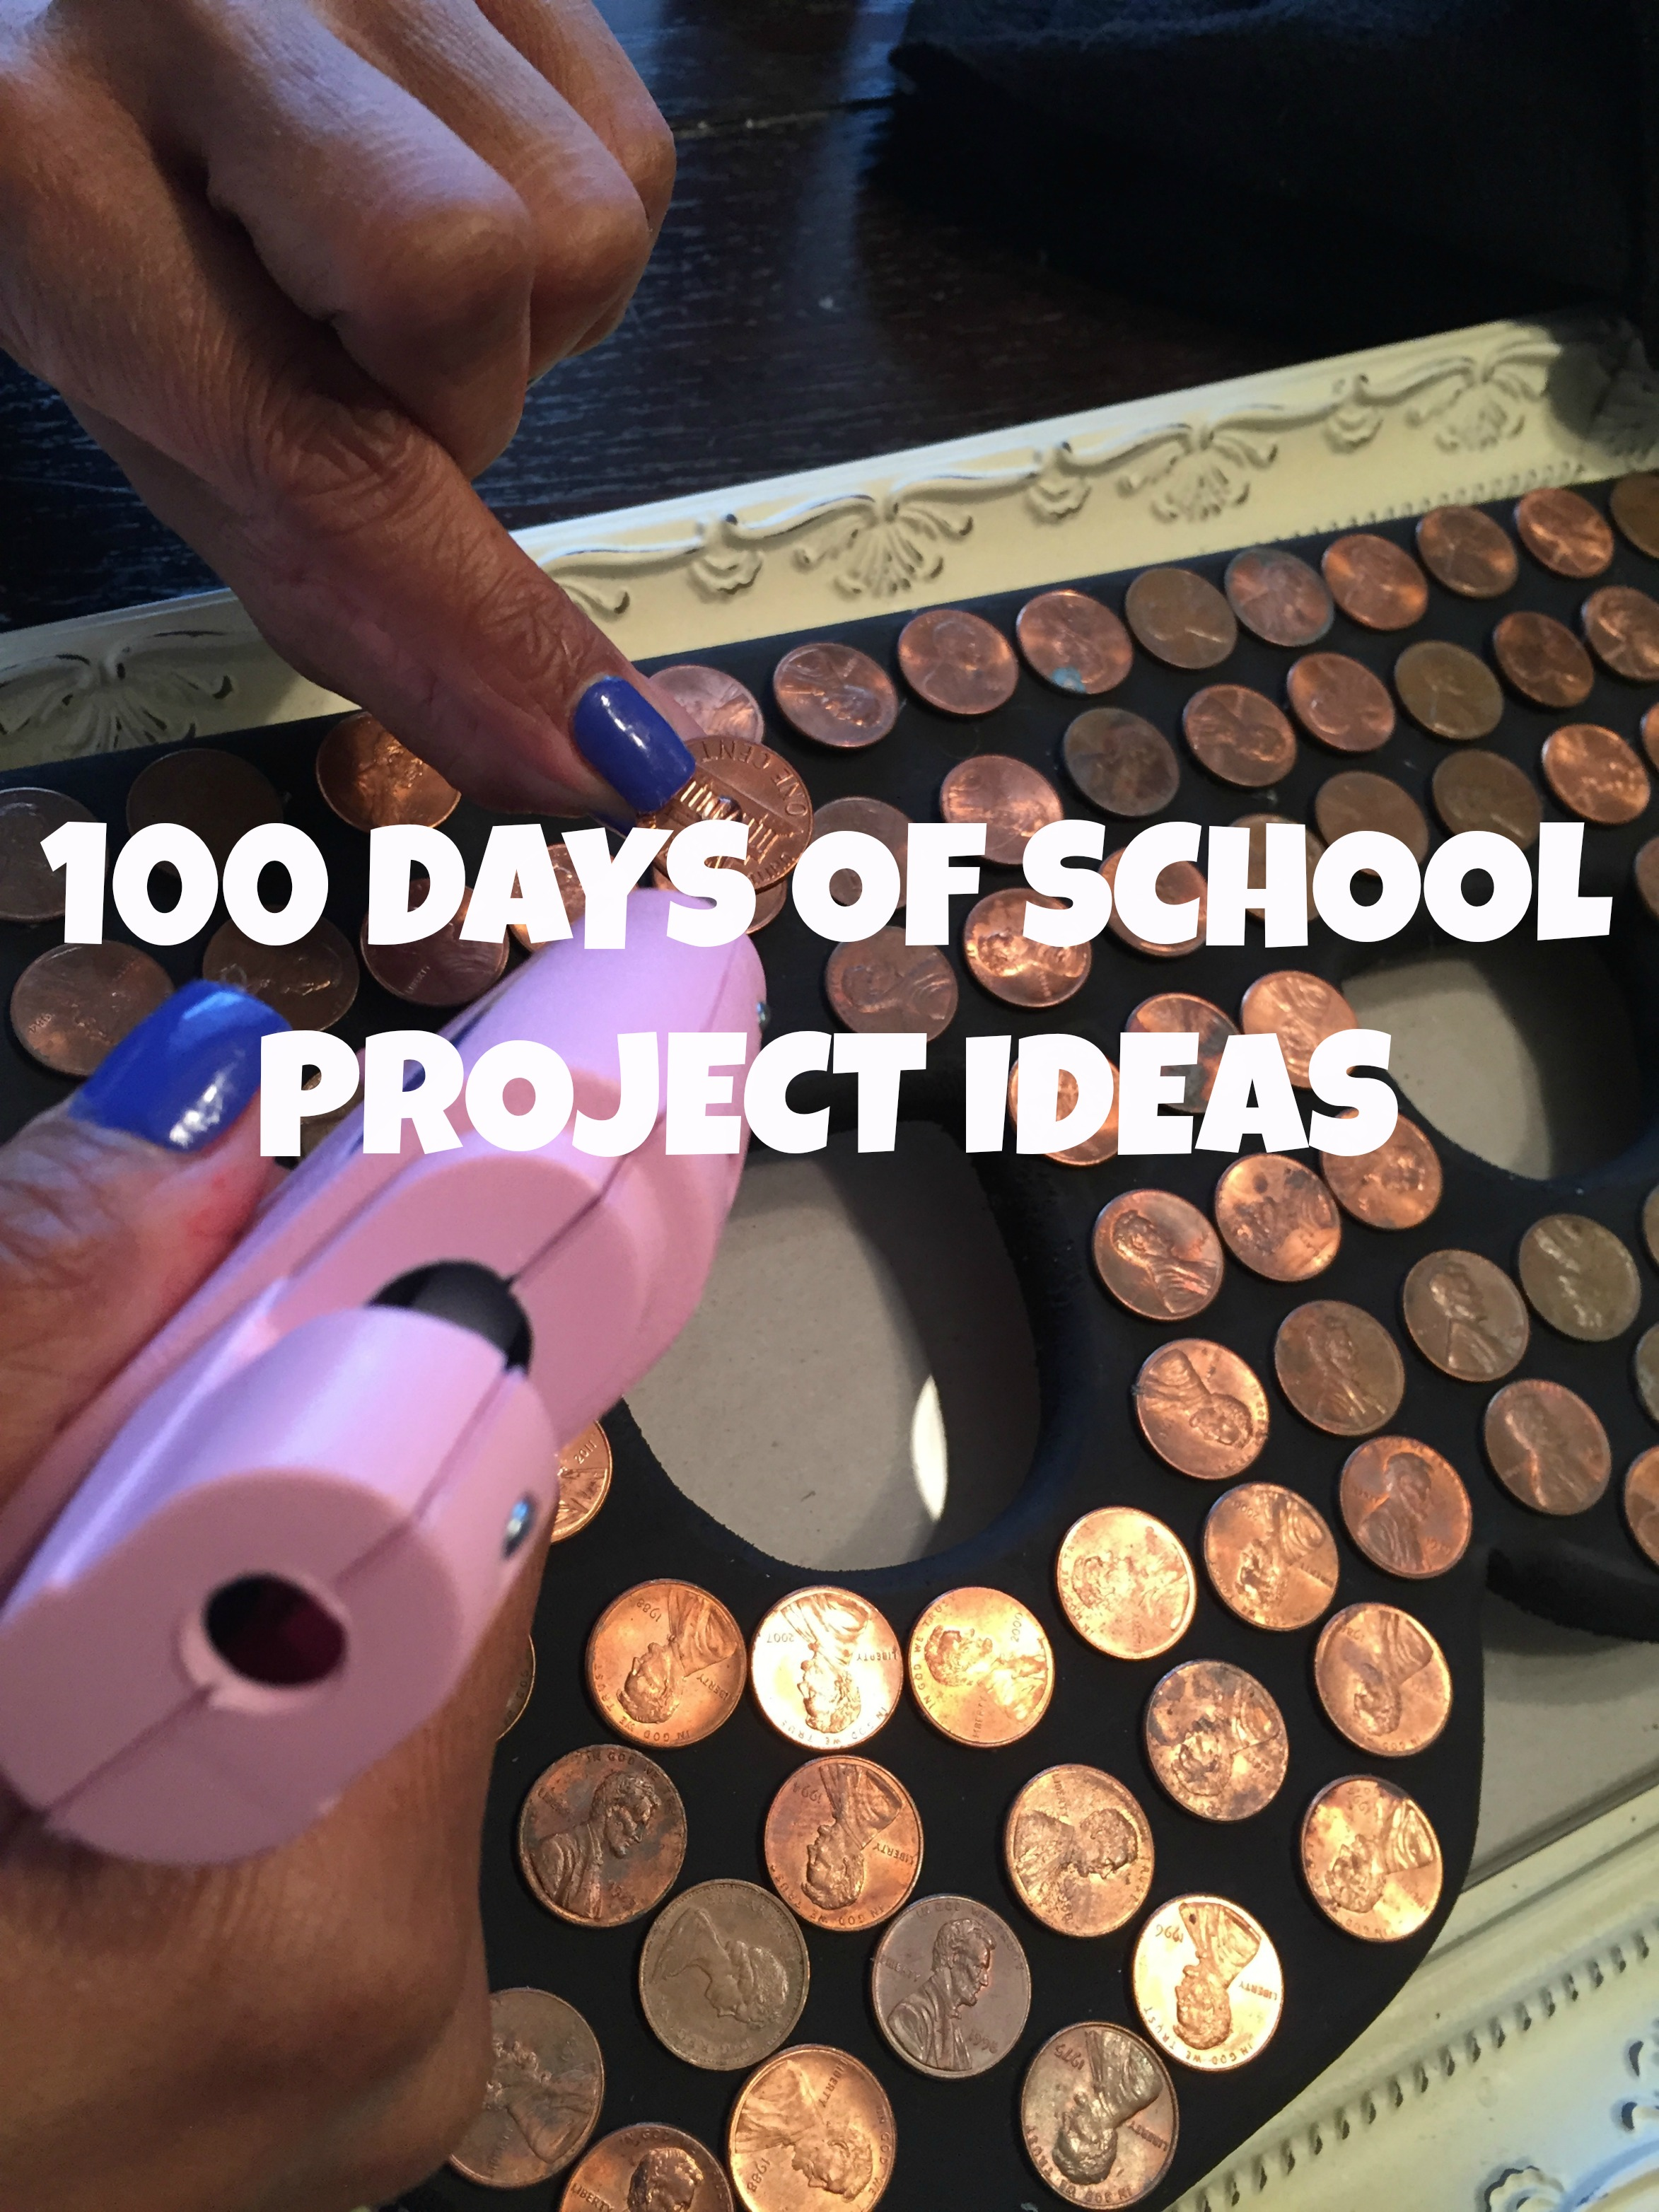 100th Day of School Decoration Ideas The 100th Day of School